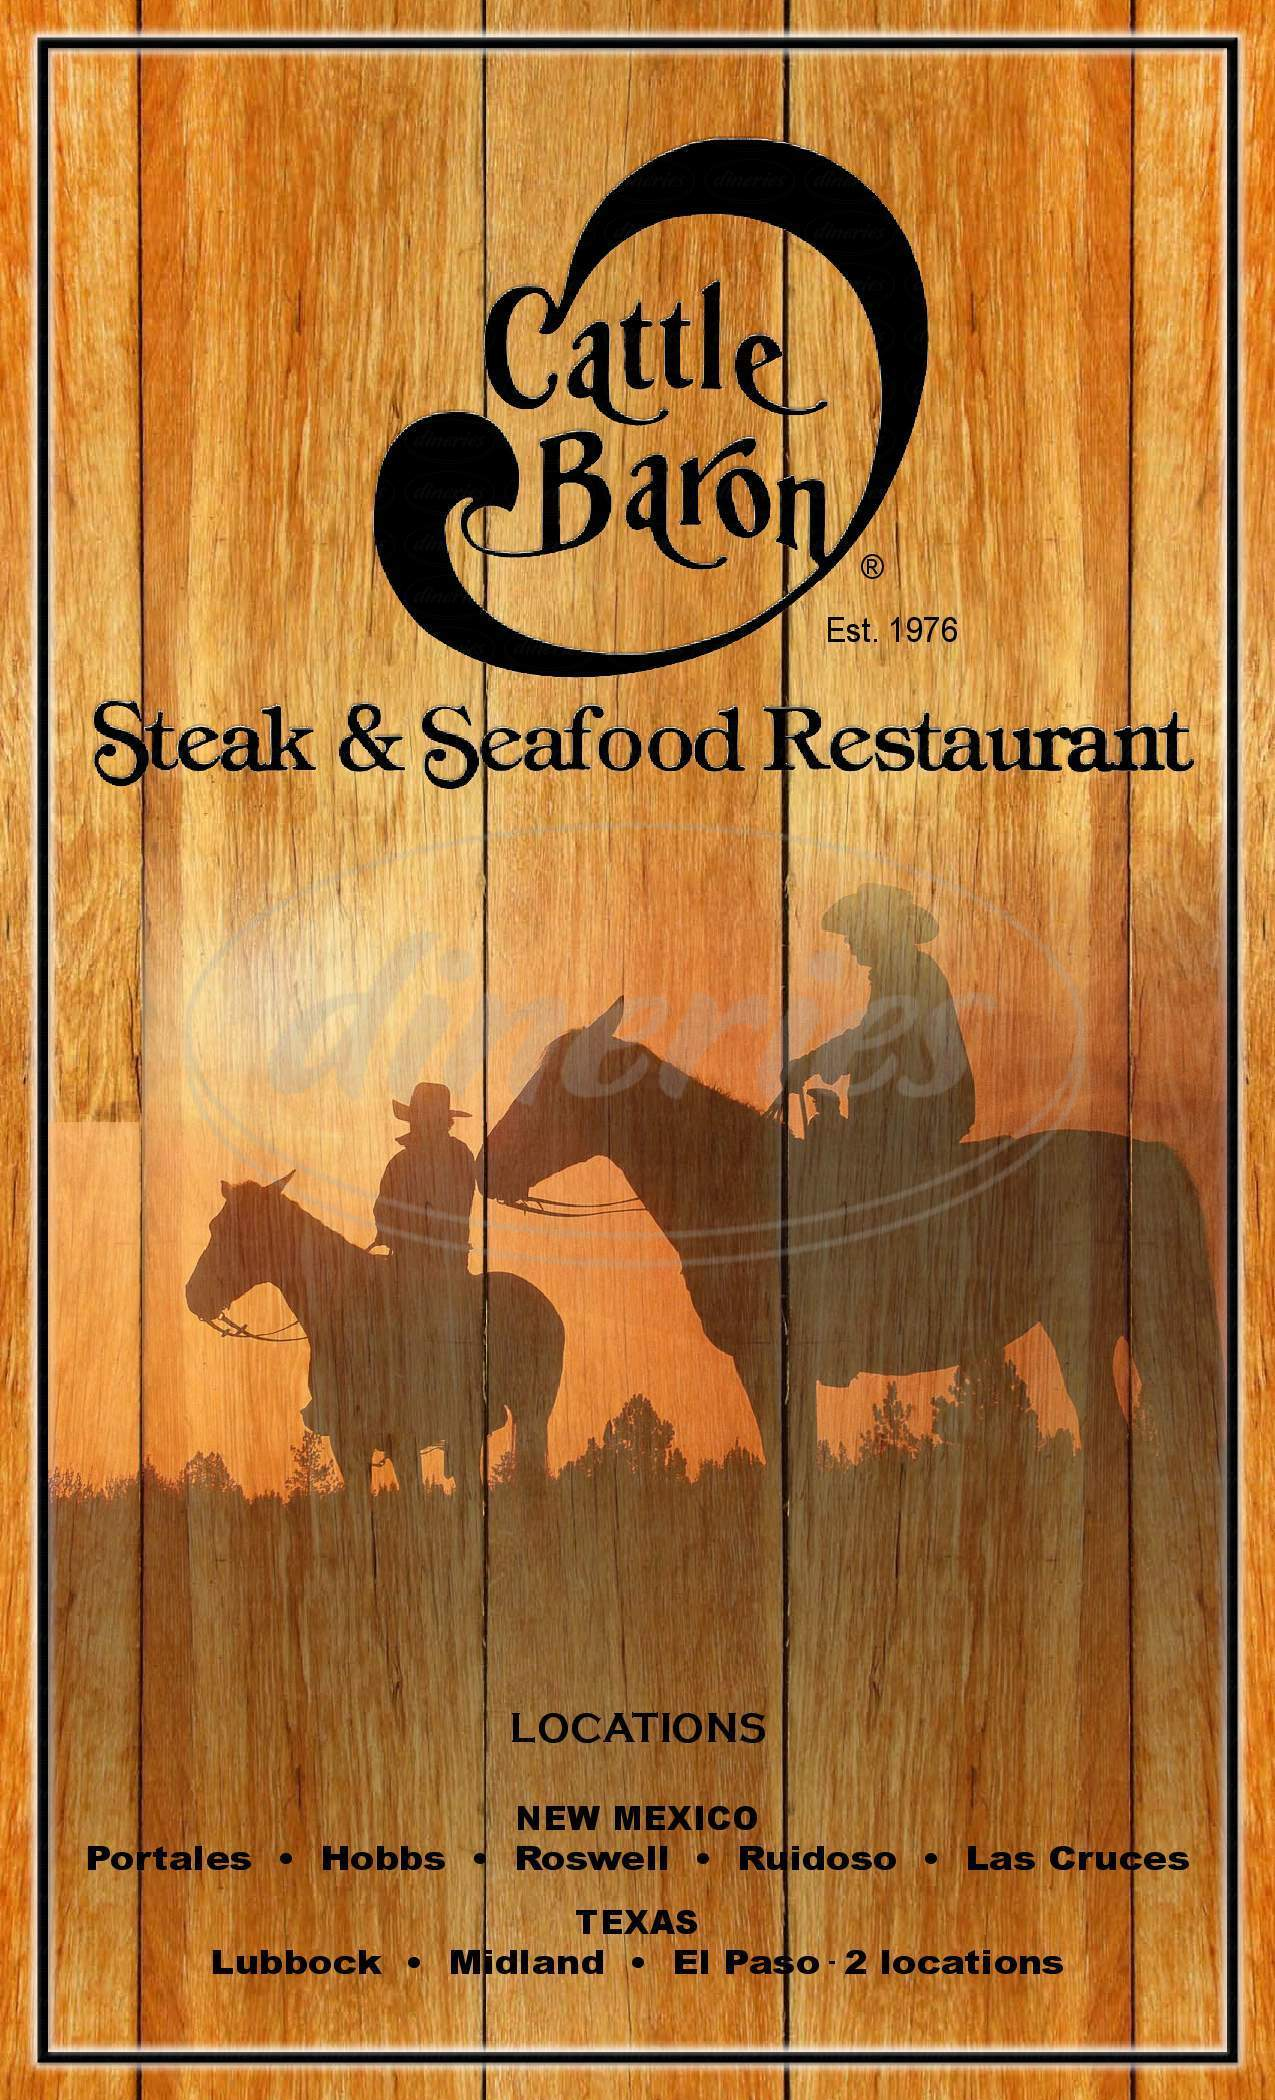 menu for Cattle Baron Steak & Seafood Restaurant